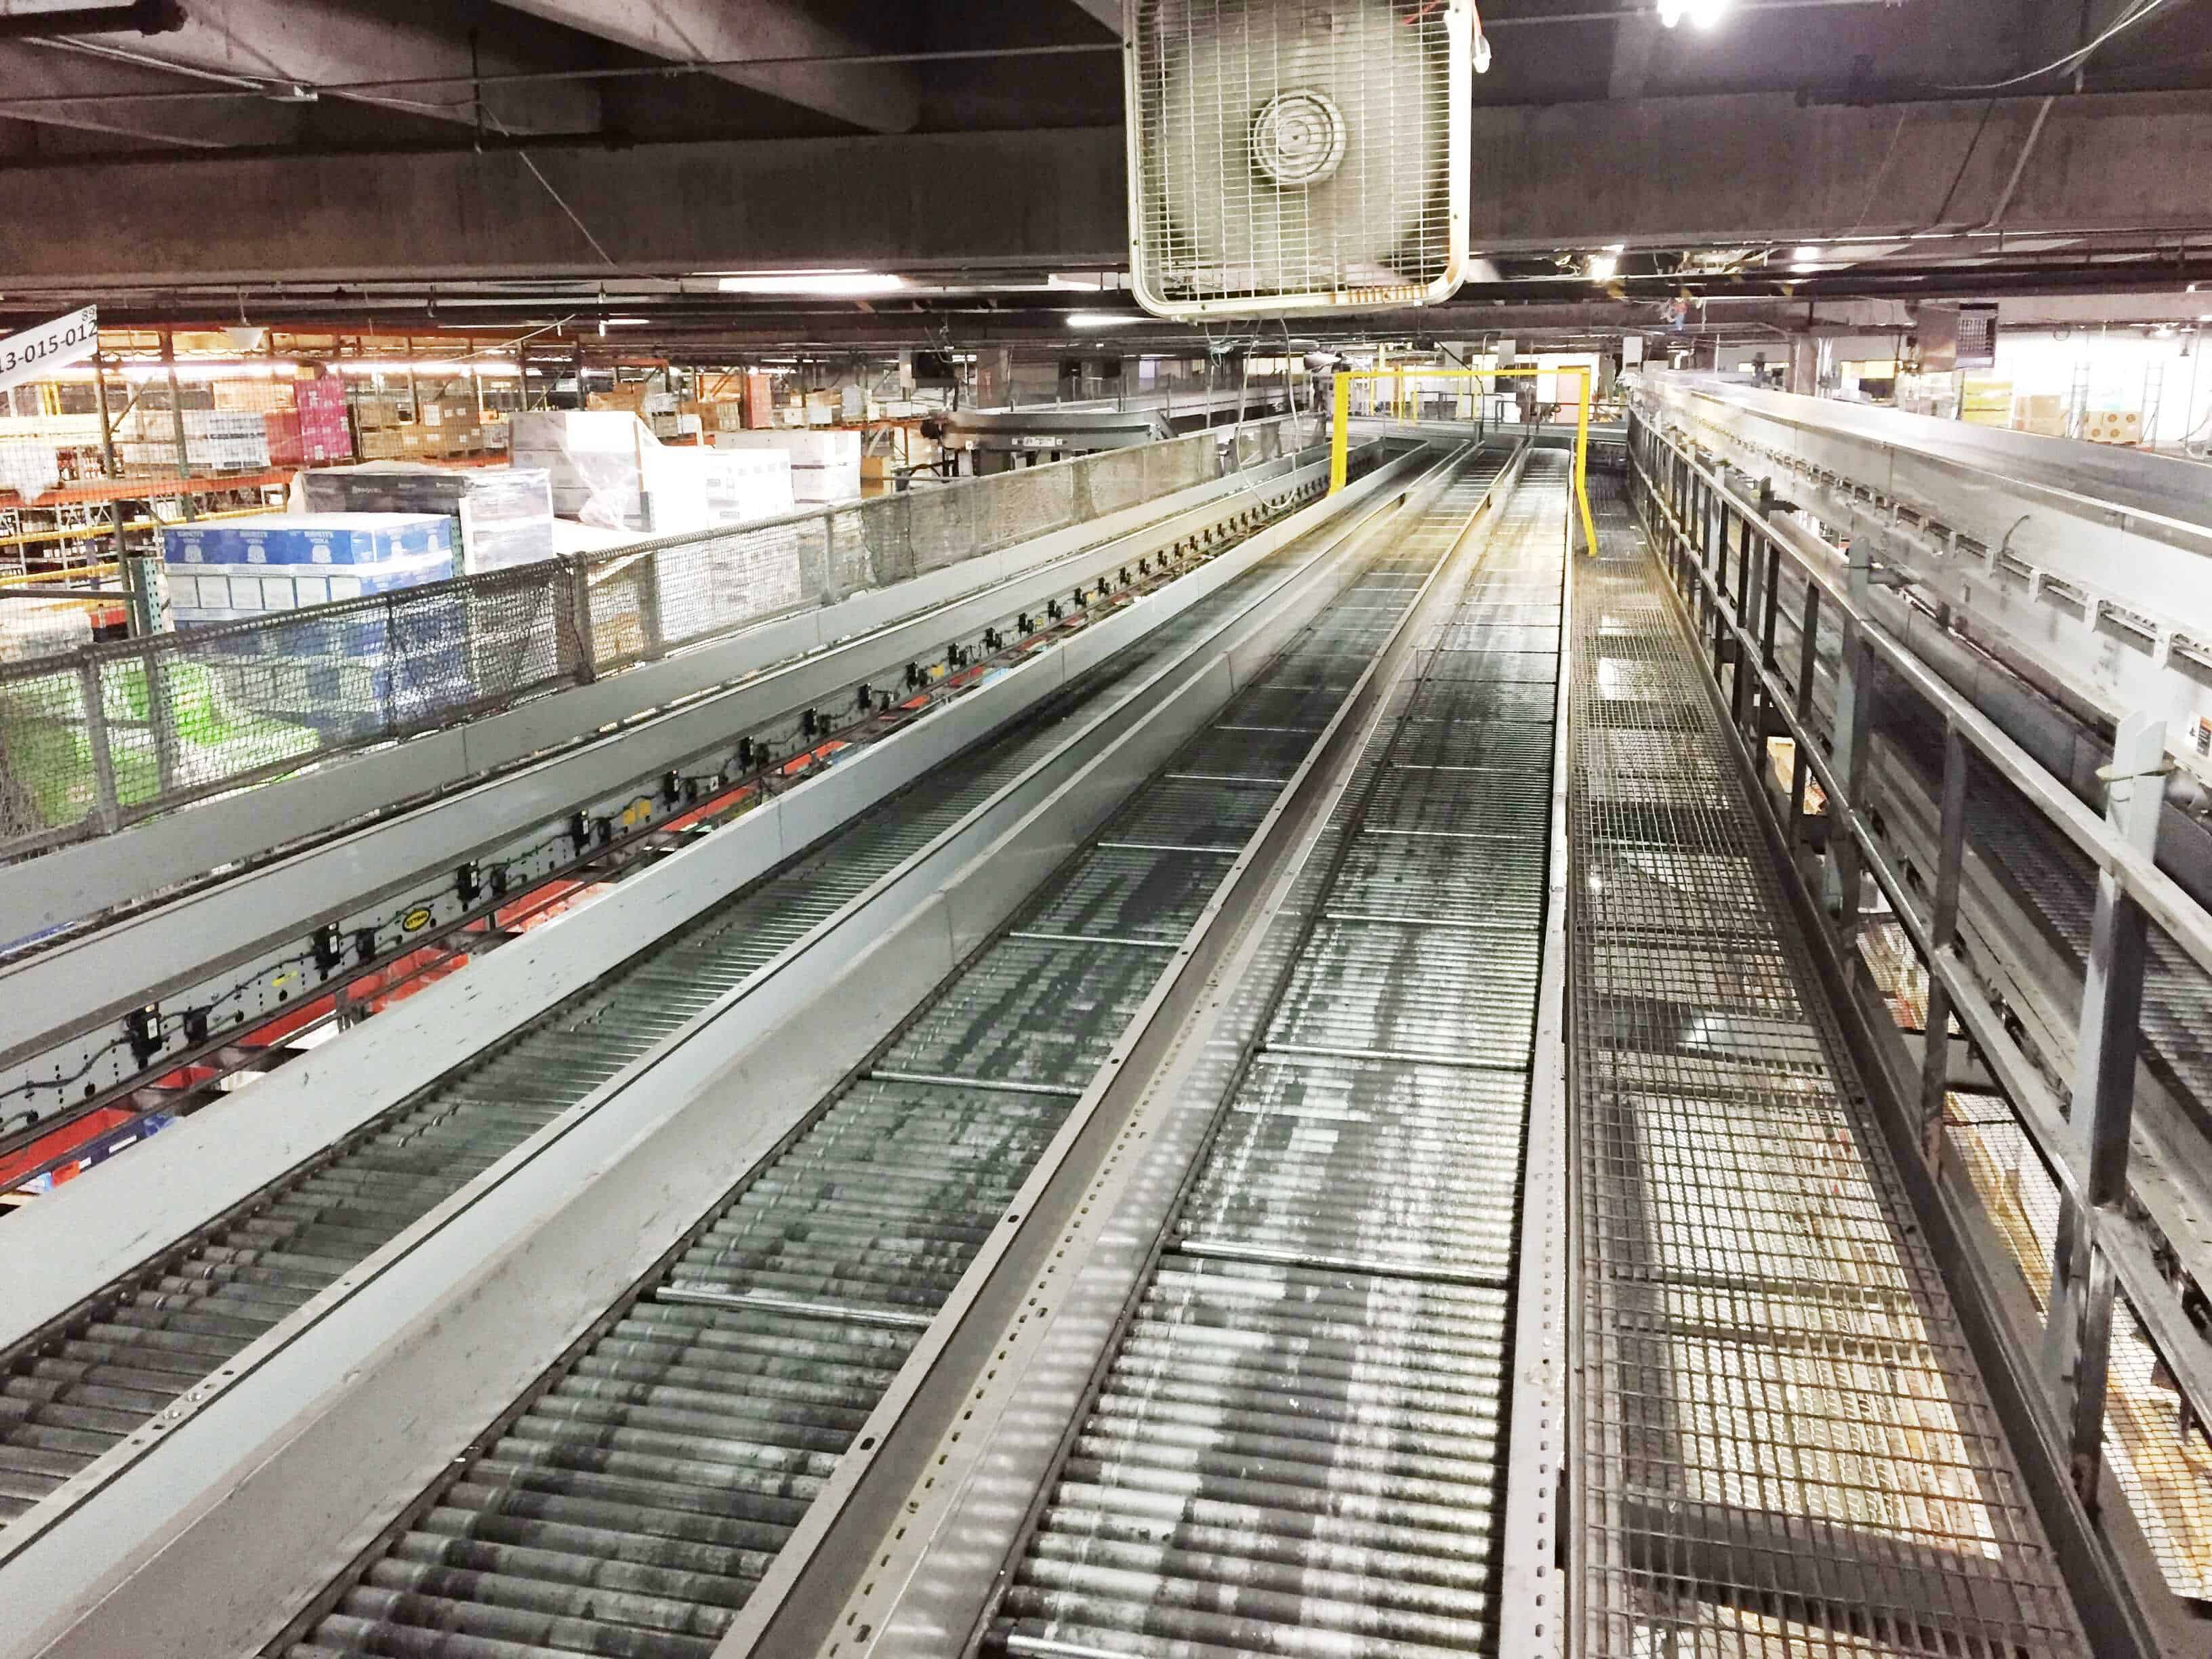 Mezzanine-Catwalk (30 inch) with Conveyor